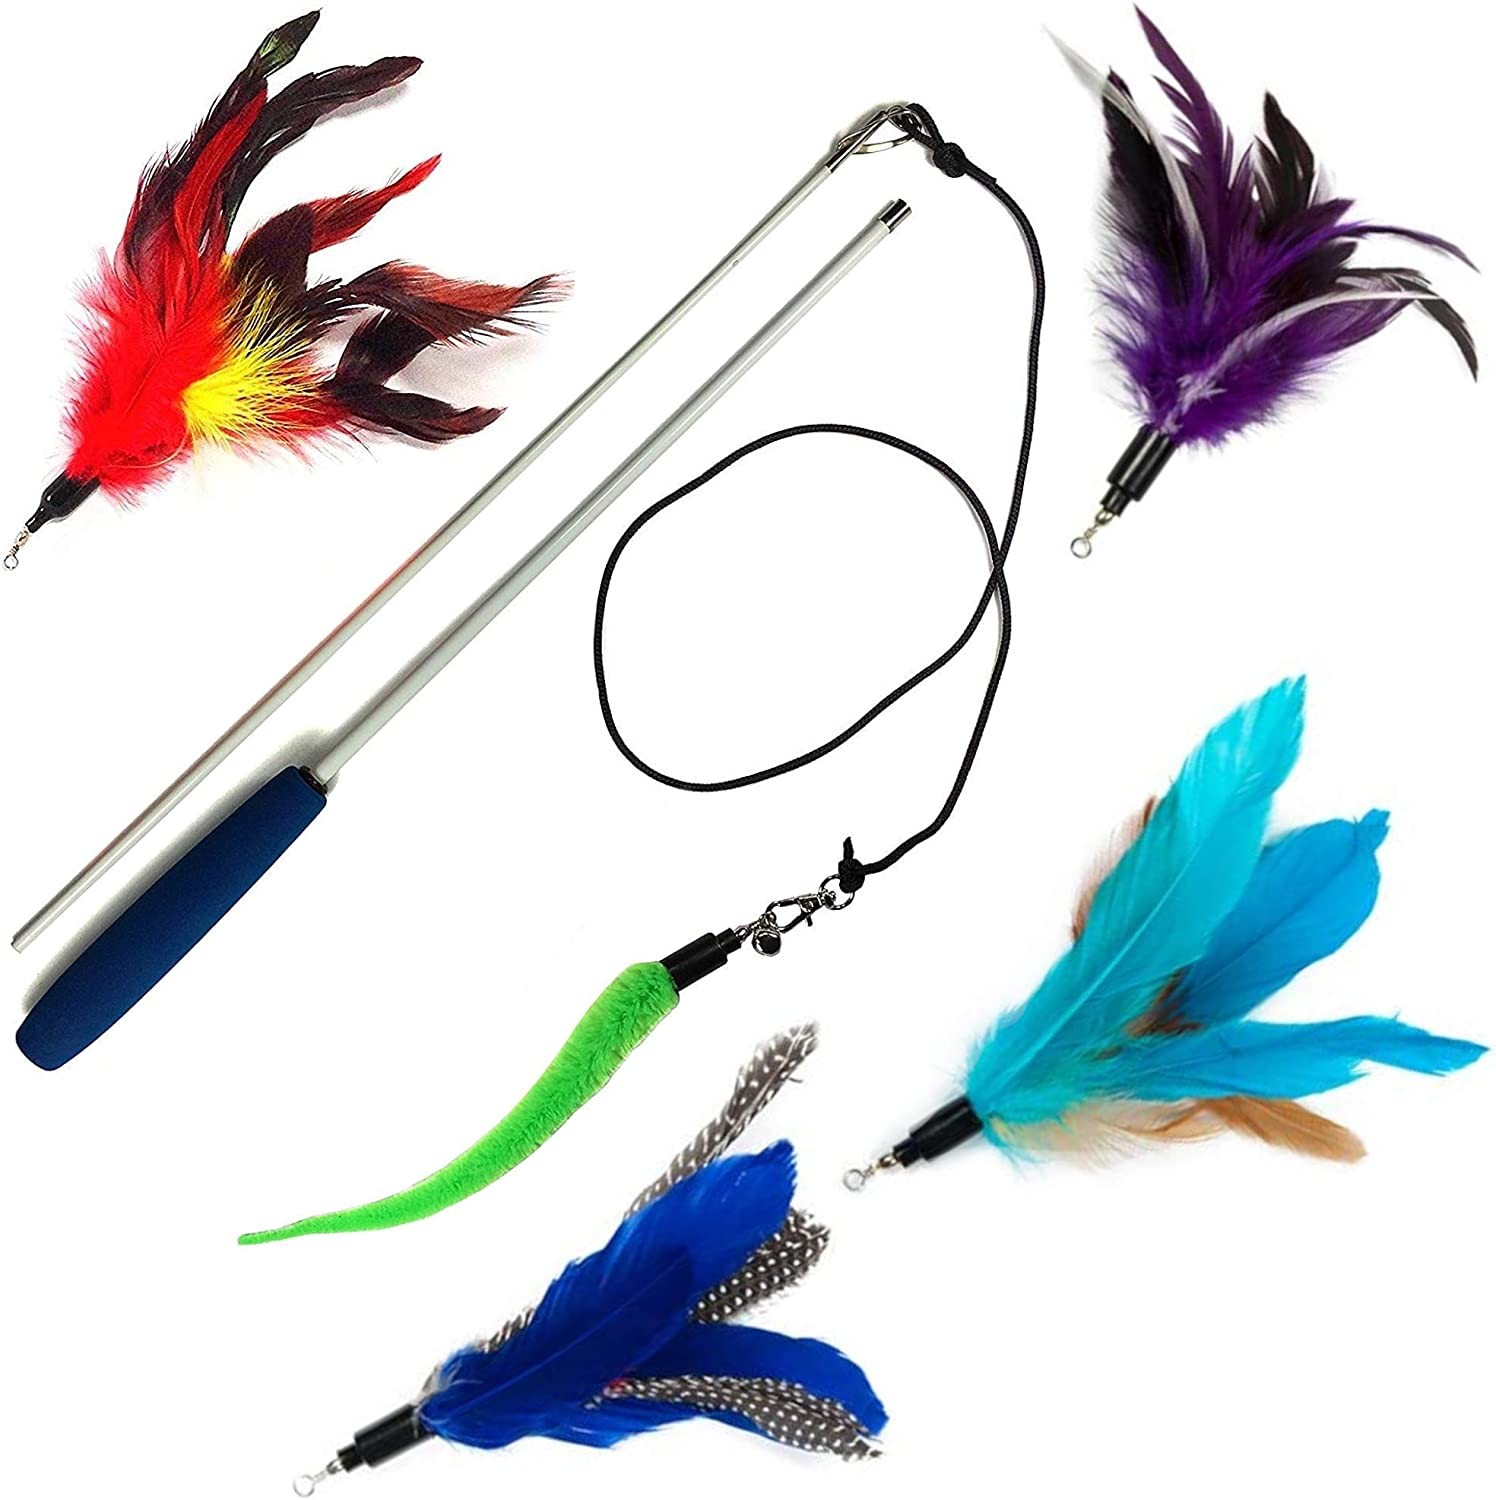 Pet Fit For Life 4 Feather Teaser and Squiggly Worm Exerciser Toy for Cat and Kitten - Interactive Play Wand